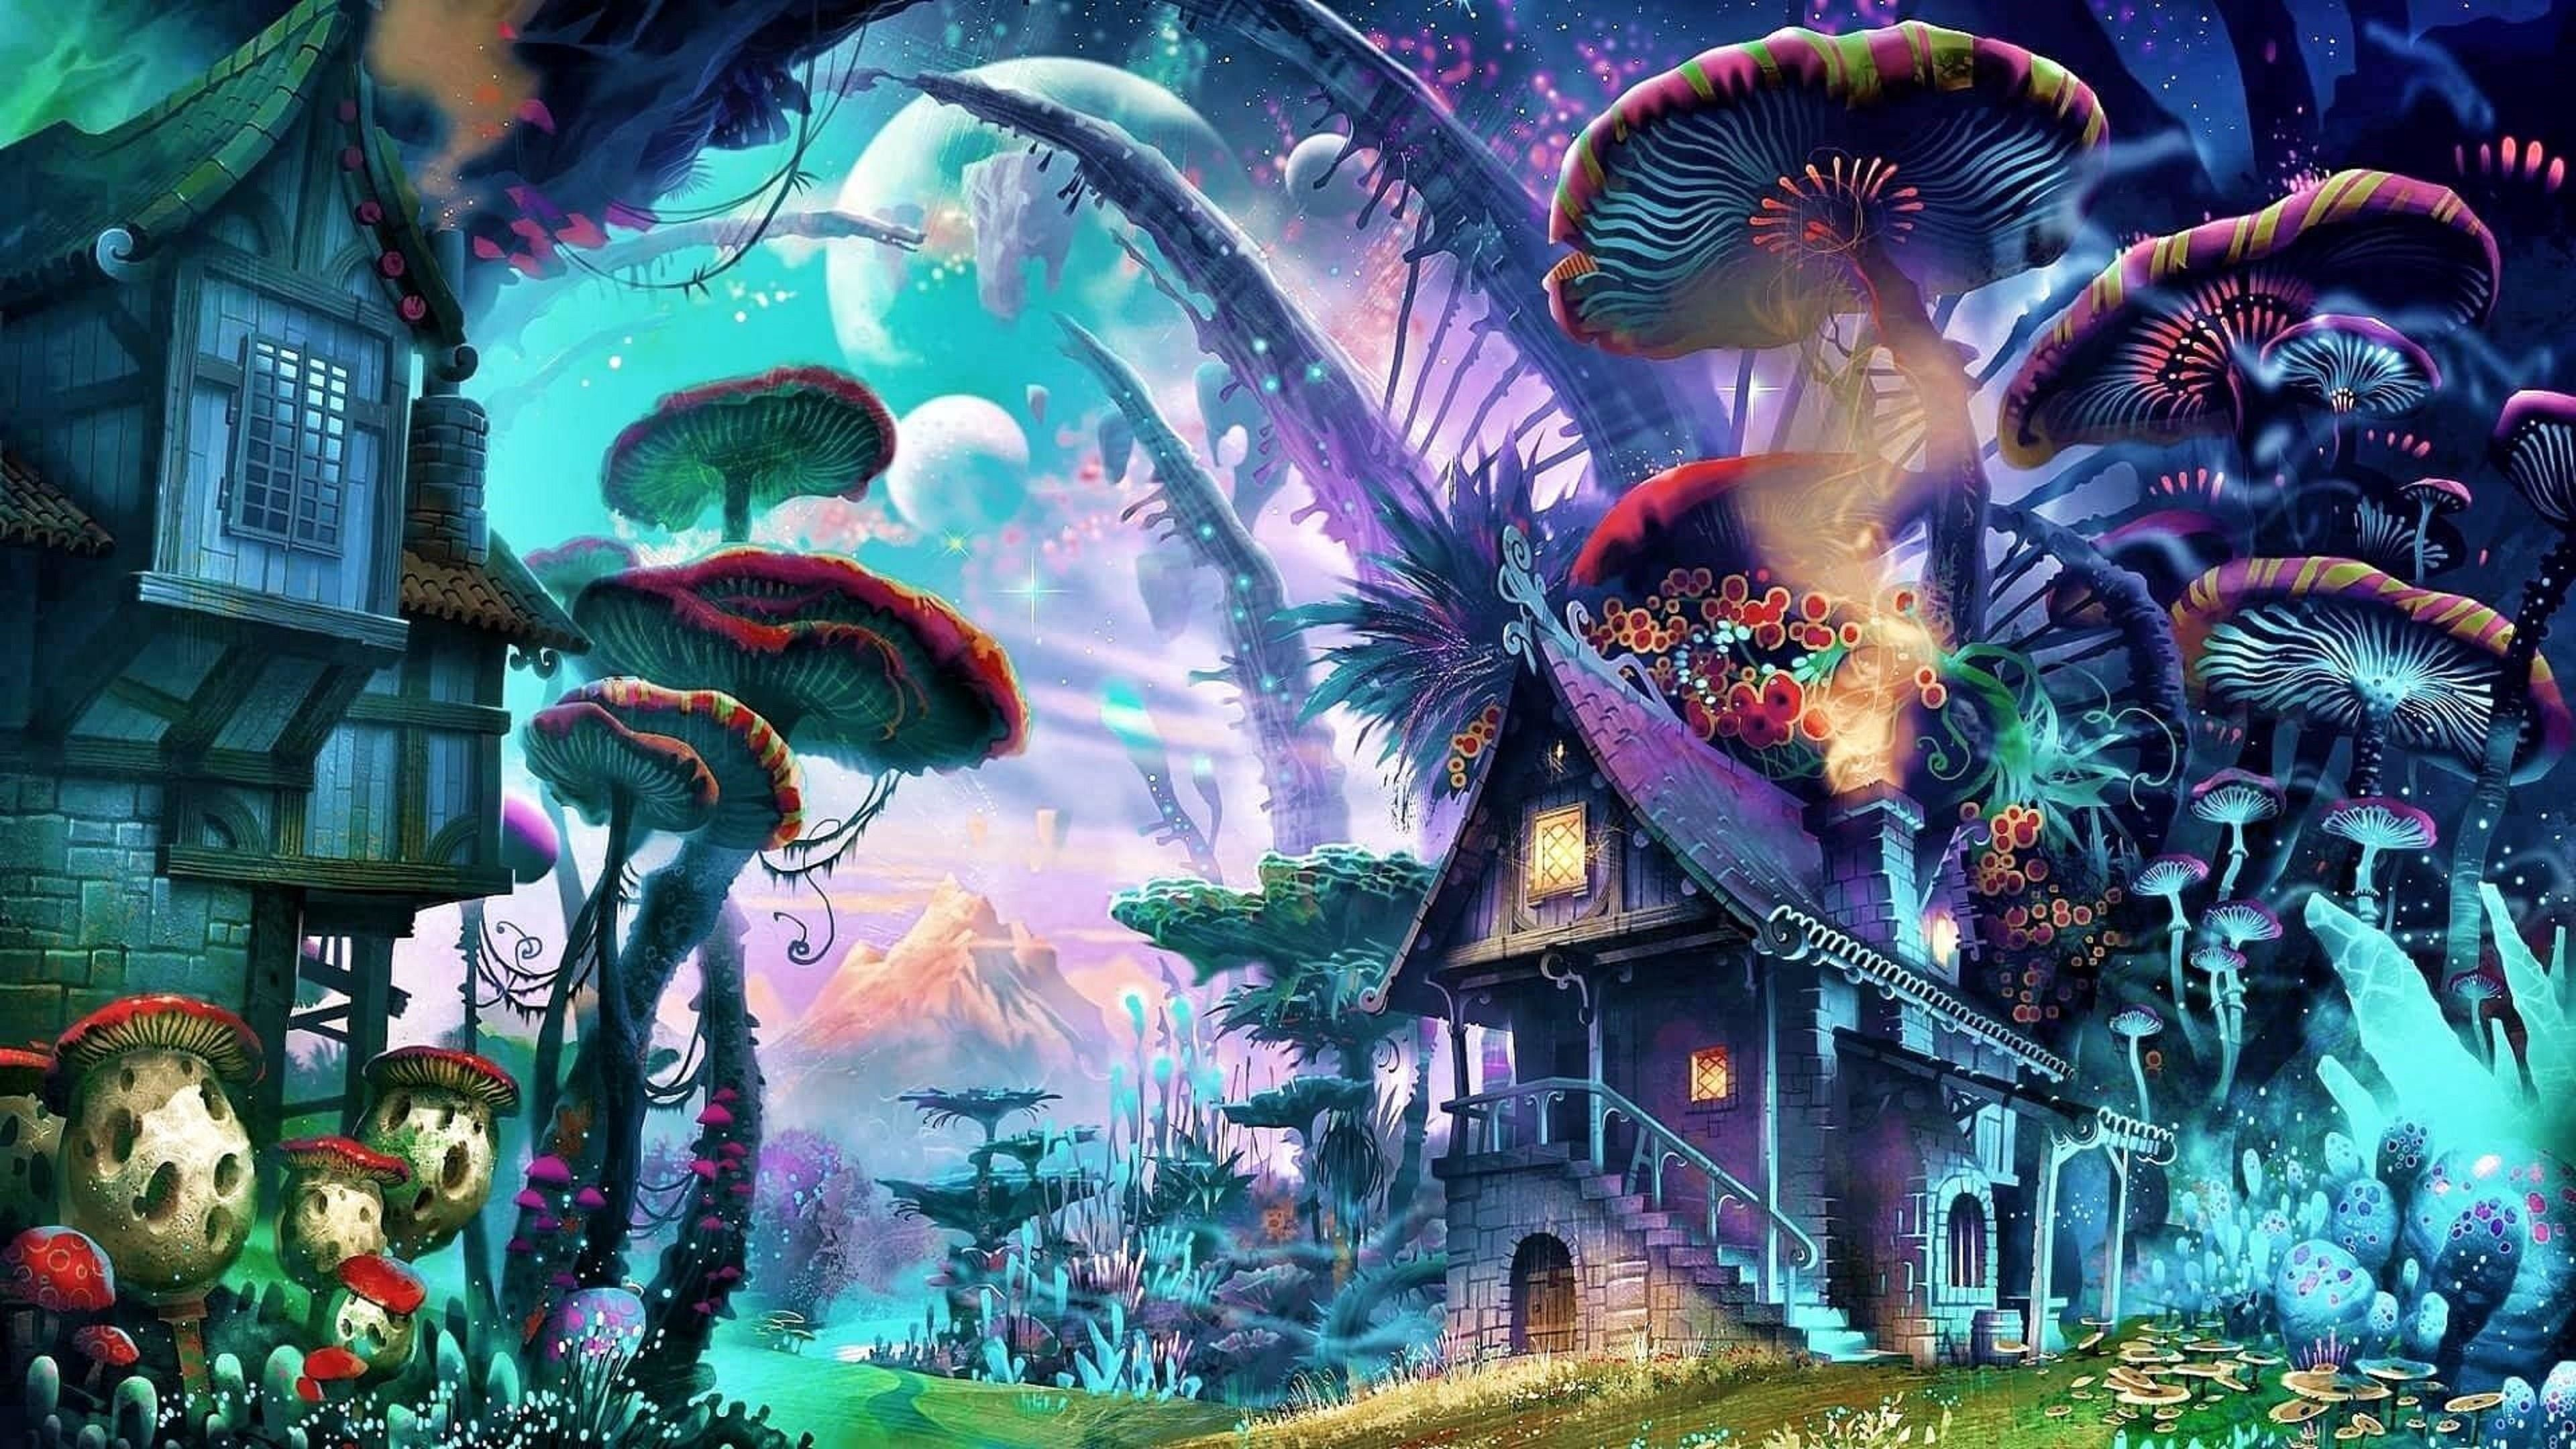 81 Psychedelic Desktop Wallpapers On Wallpaperplay Desktop Wallpaper Art Nature Art Drawings Trippy Wallpaper